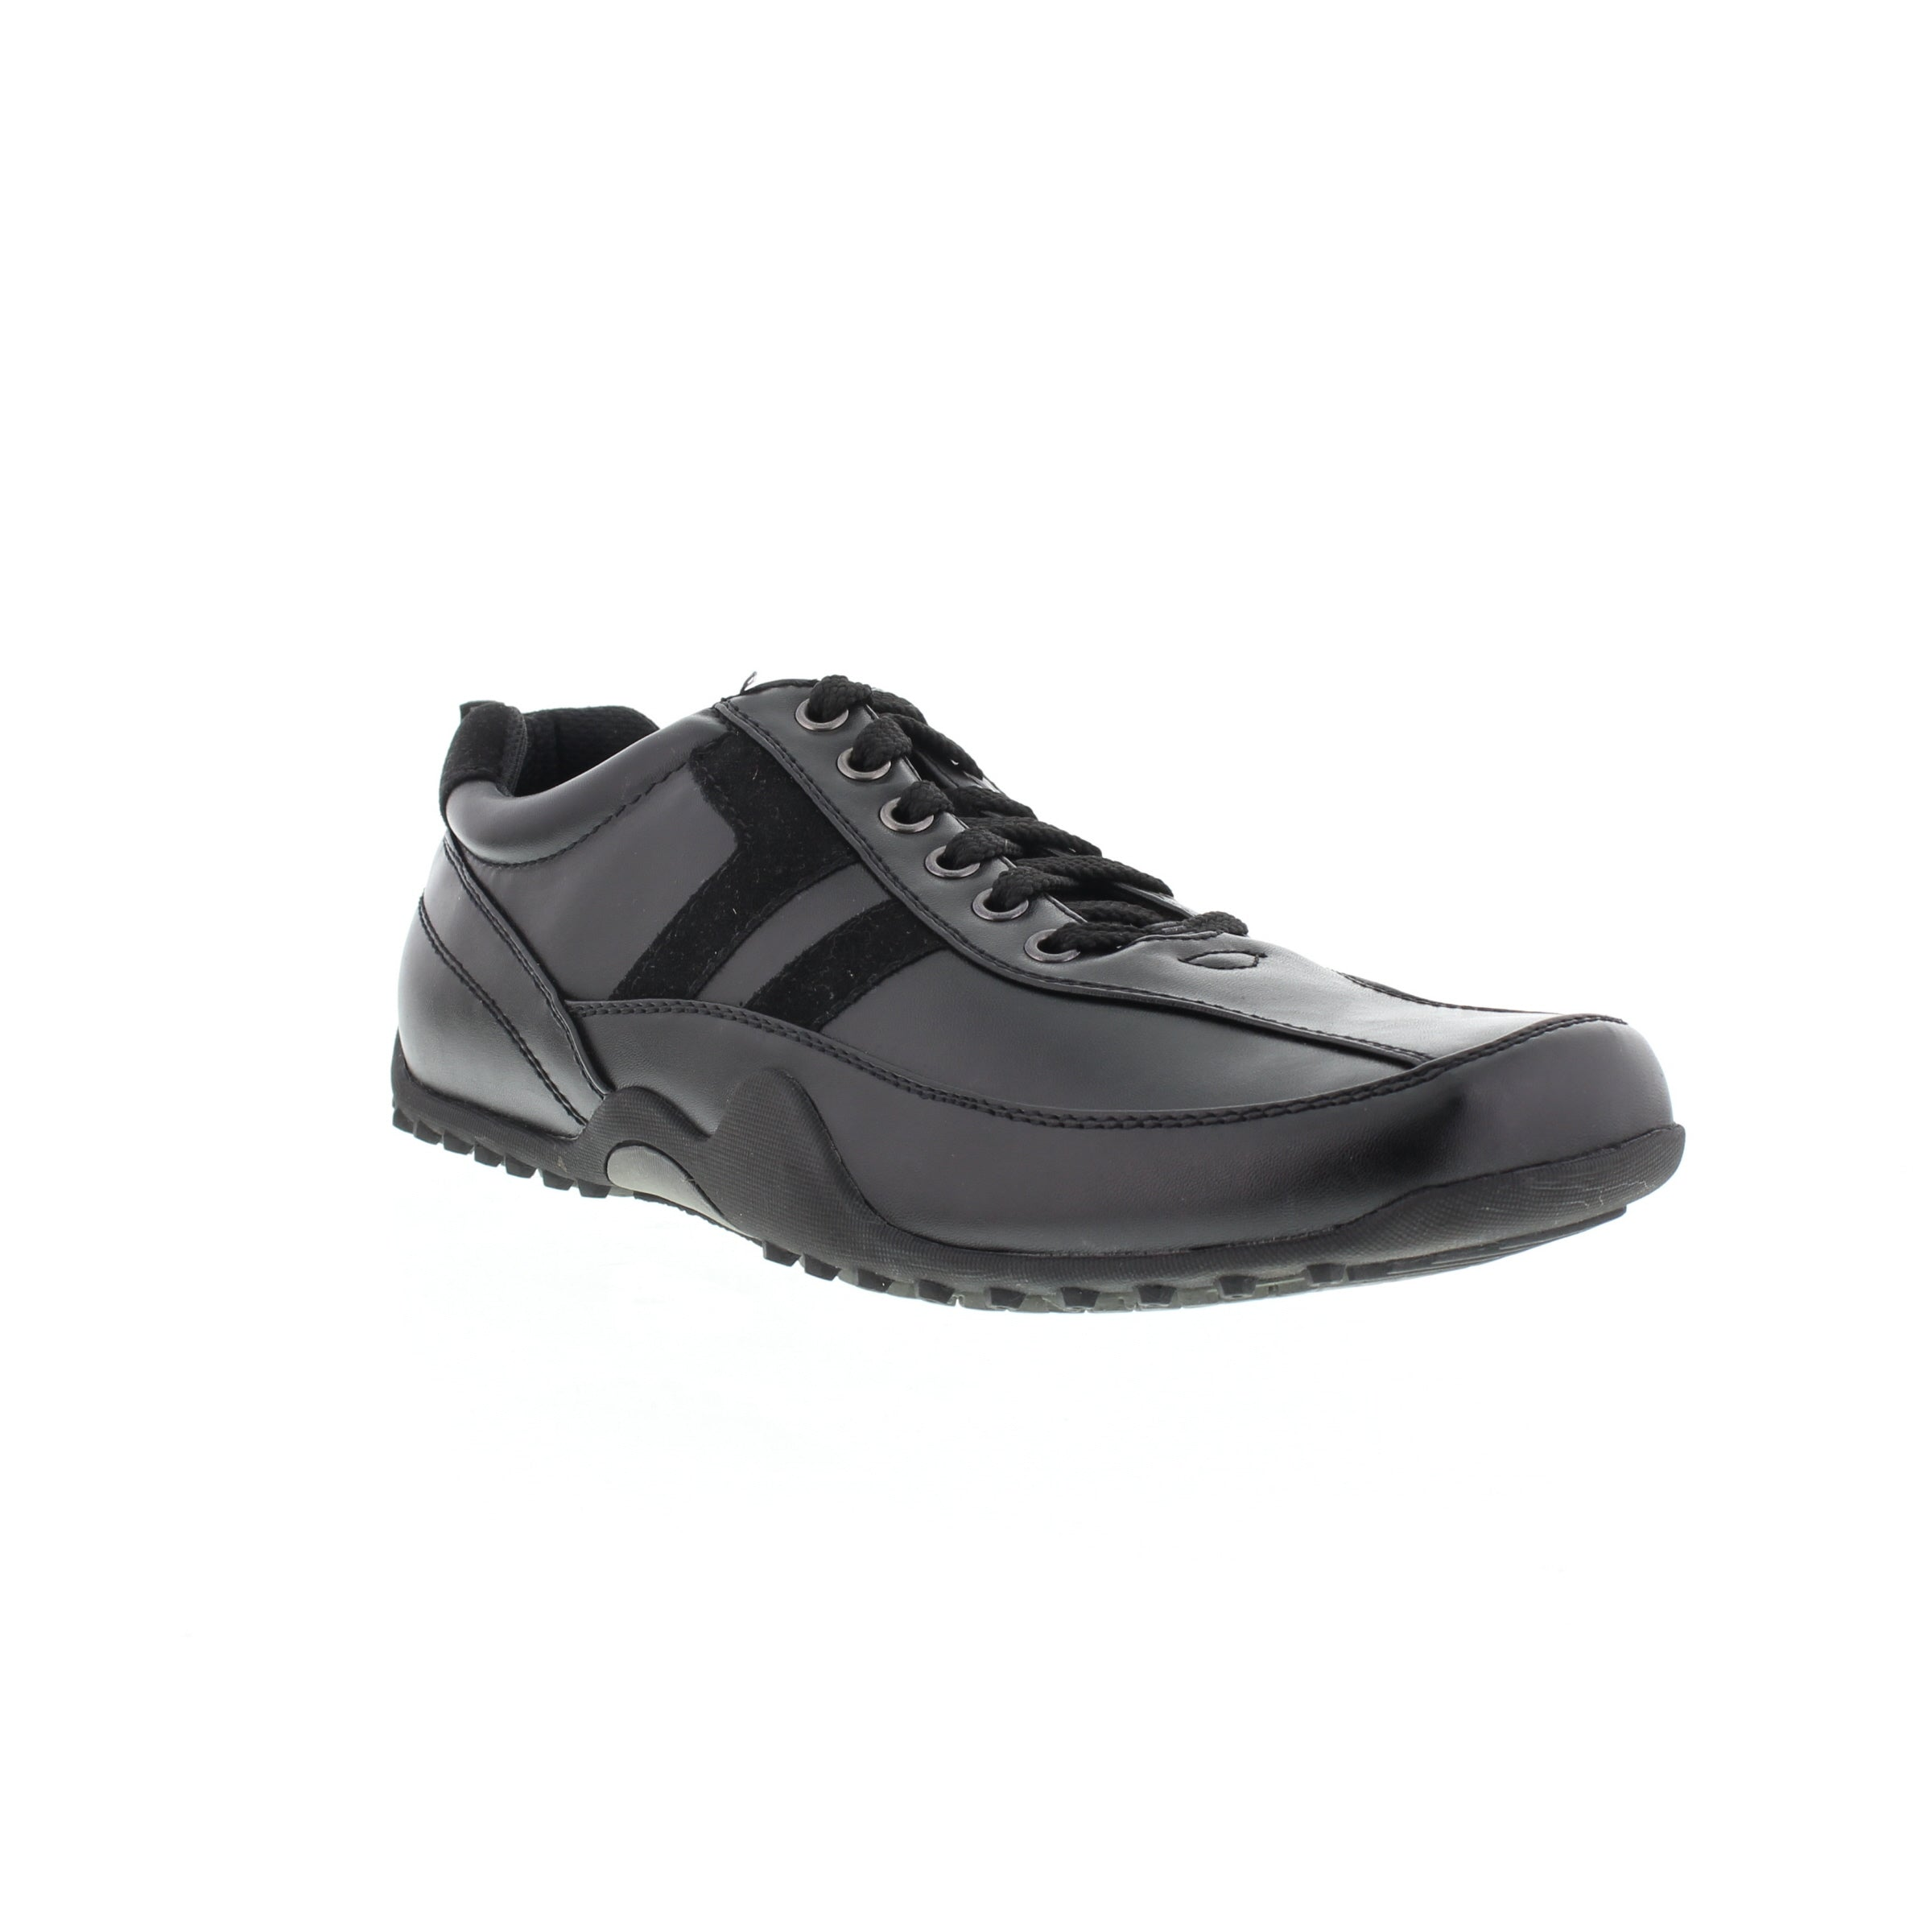 deer stags non slip shoes